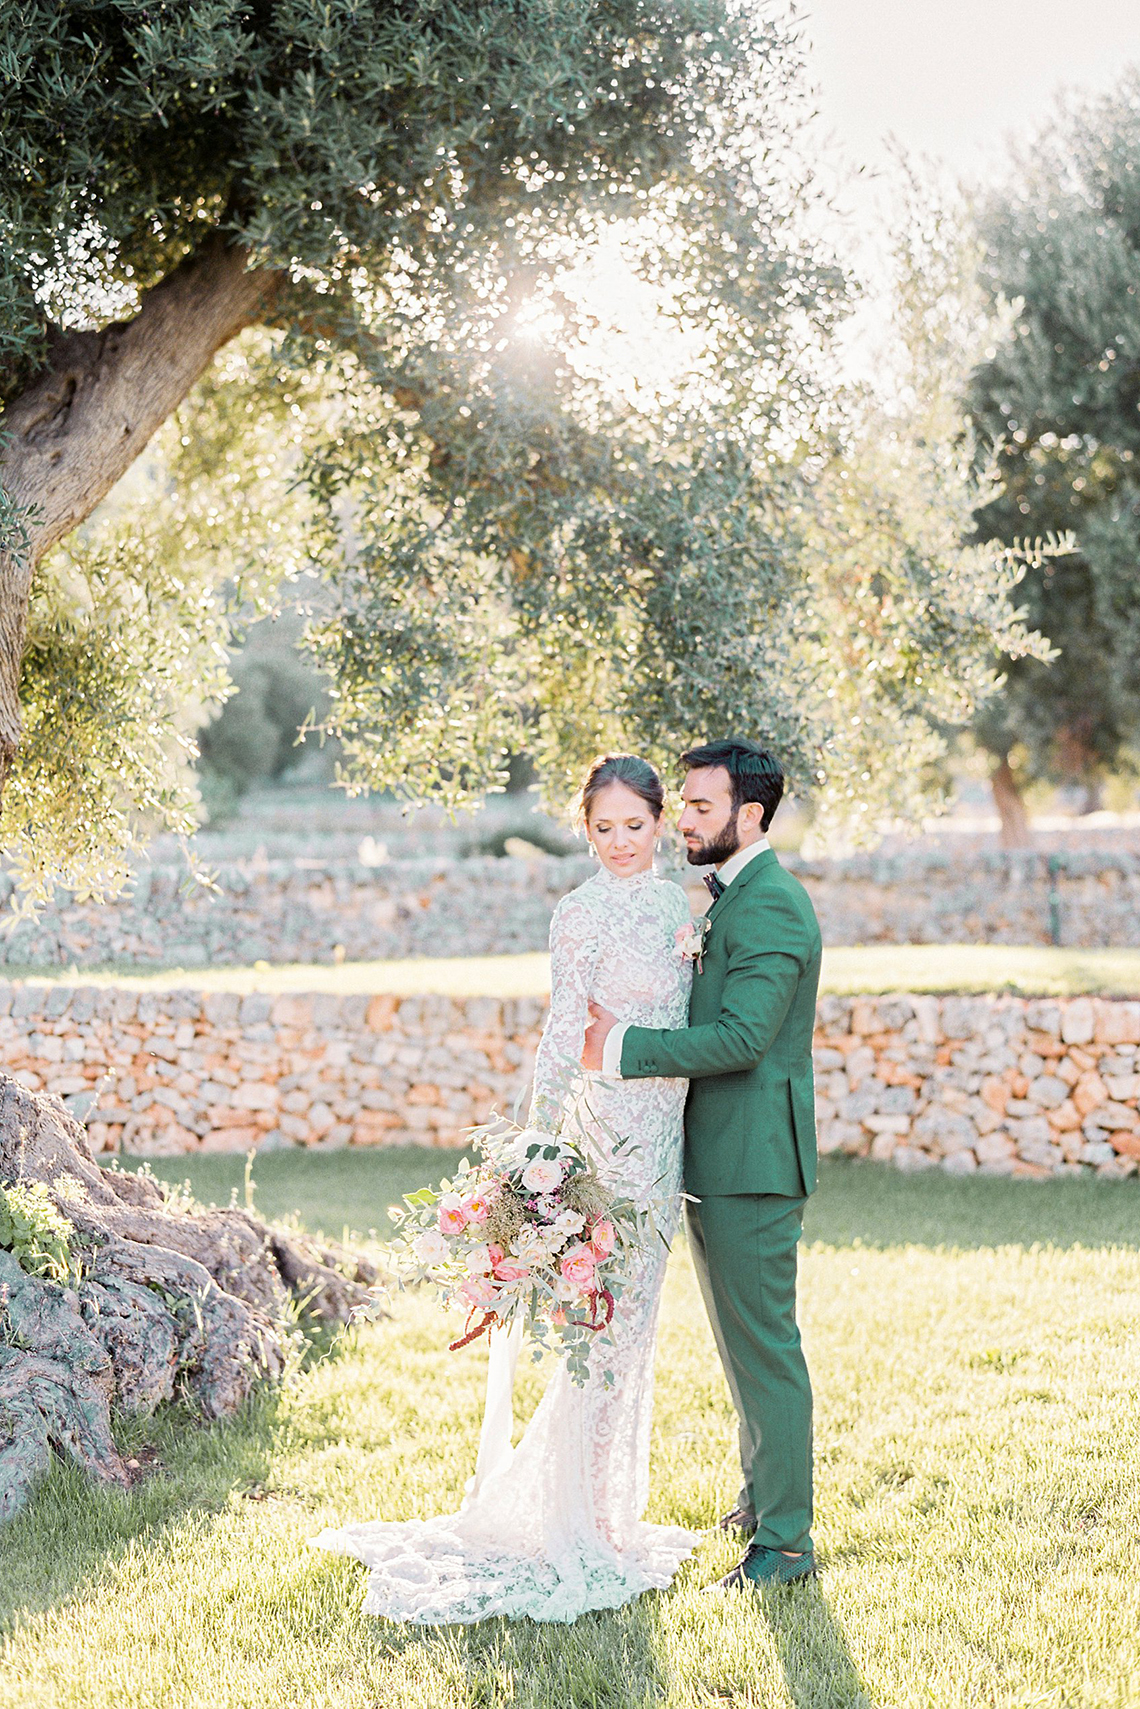 Elegant And Sophisticated Wedding In Jewel Tones In Paros Couple Portrait